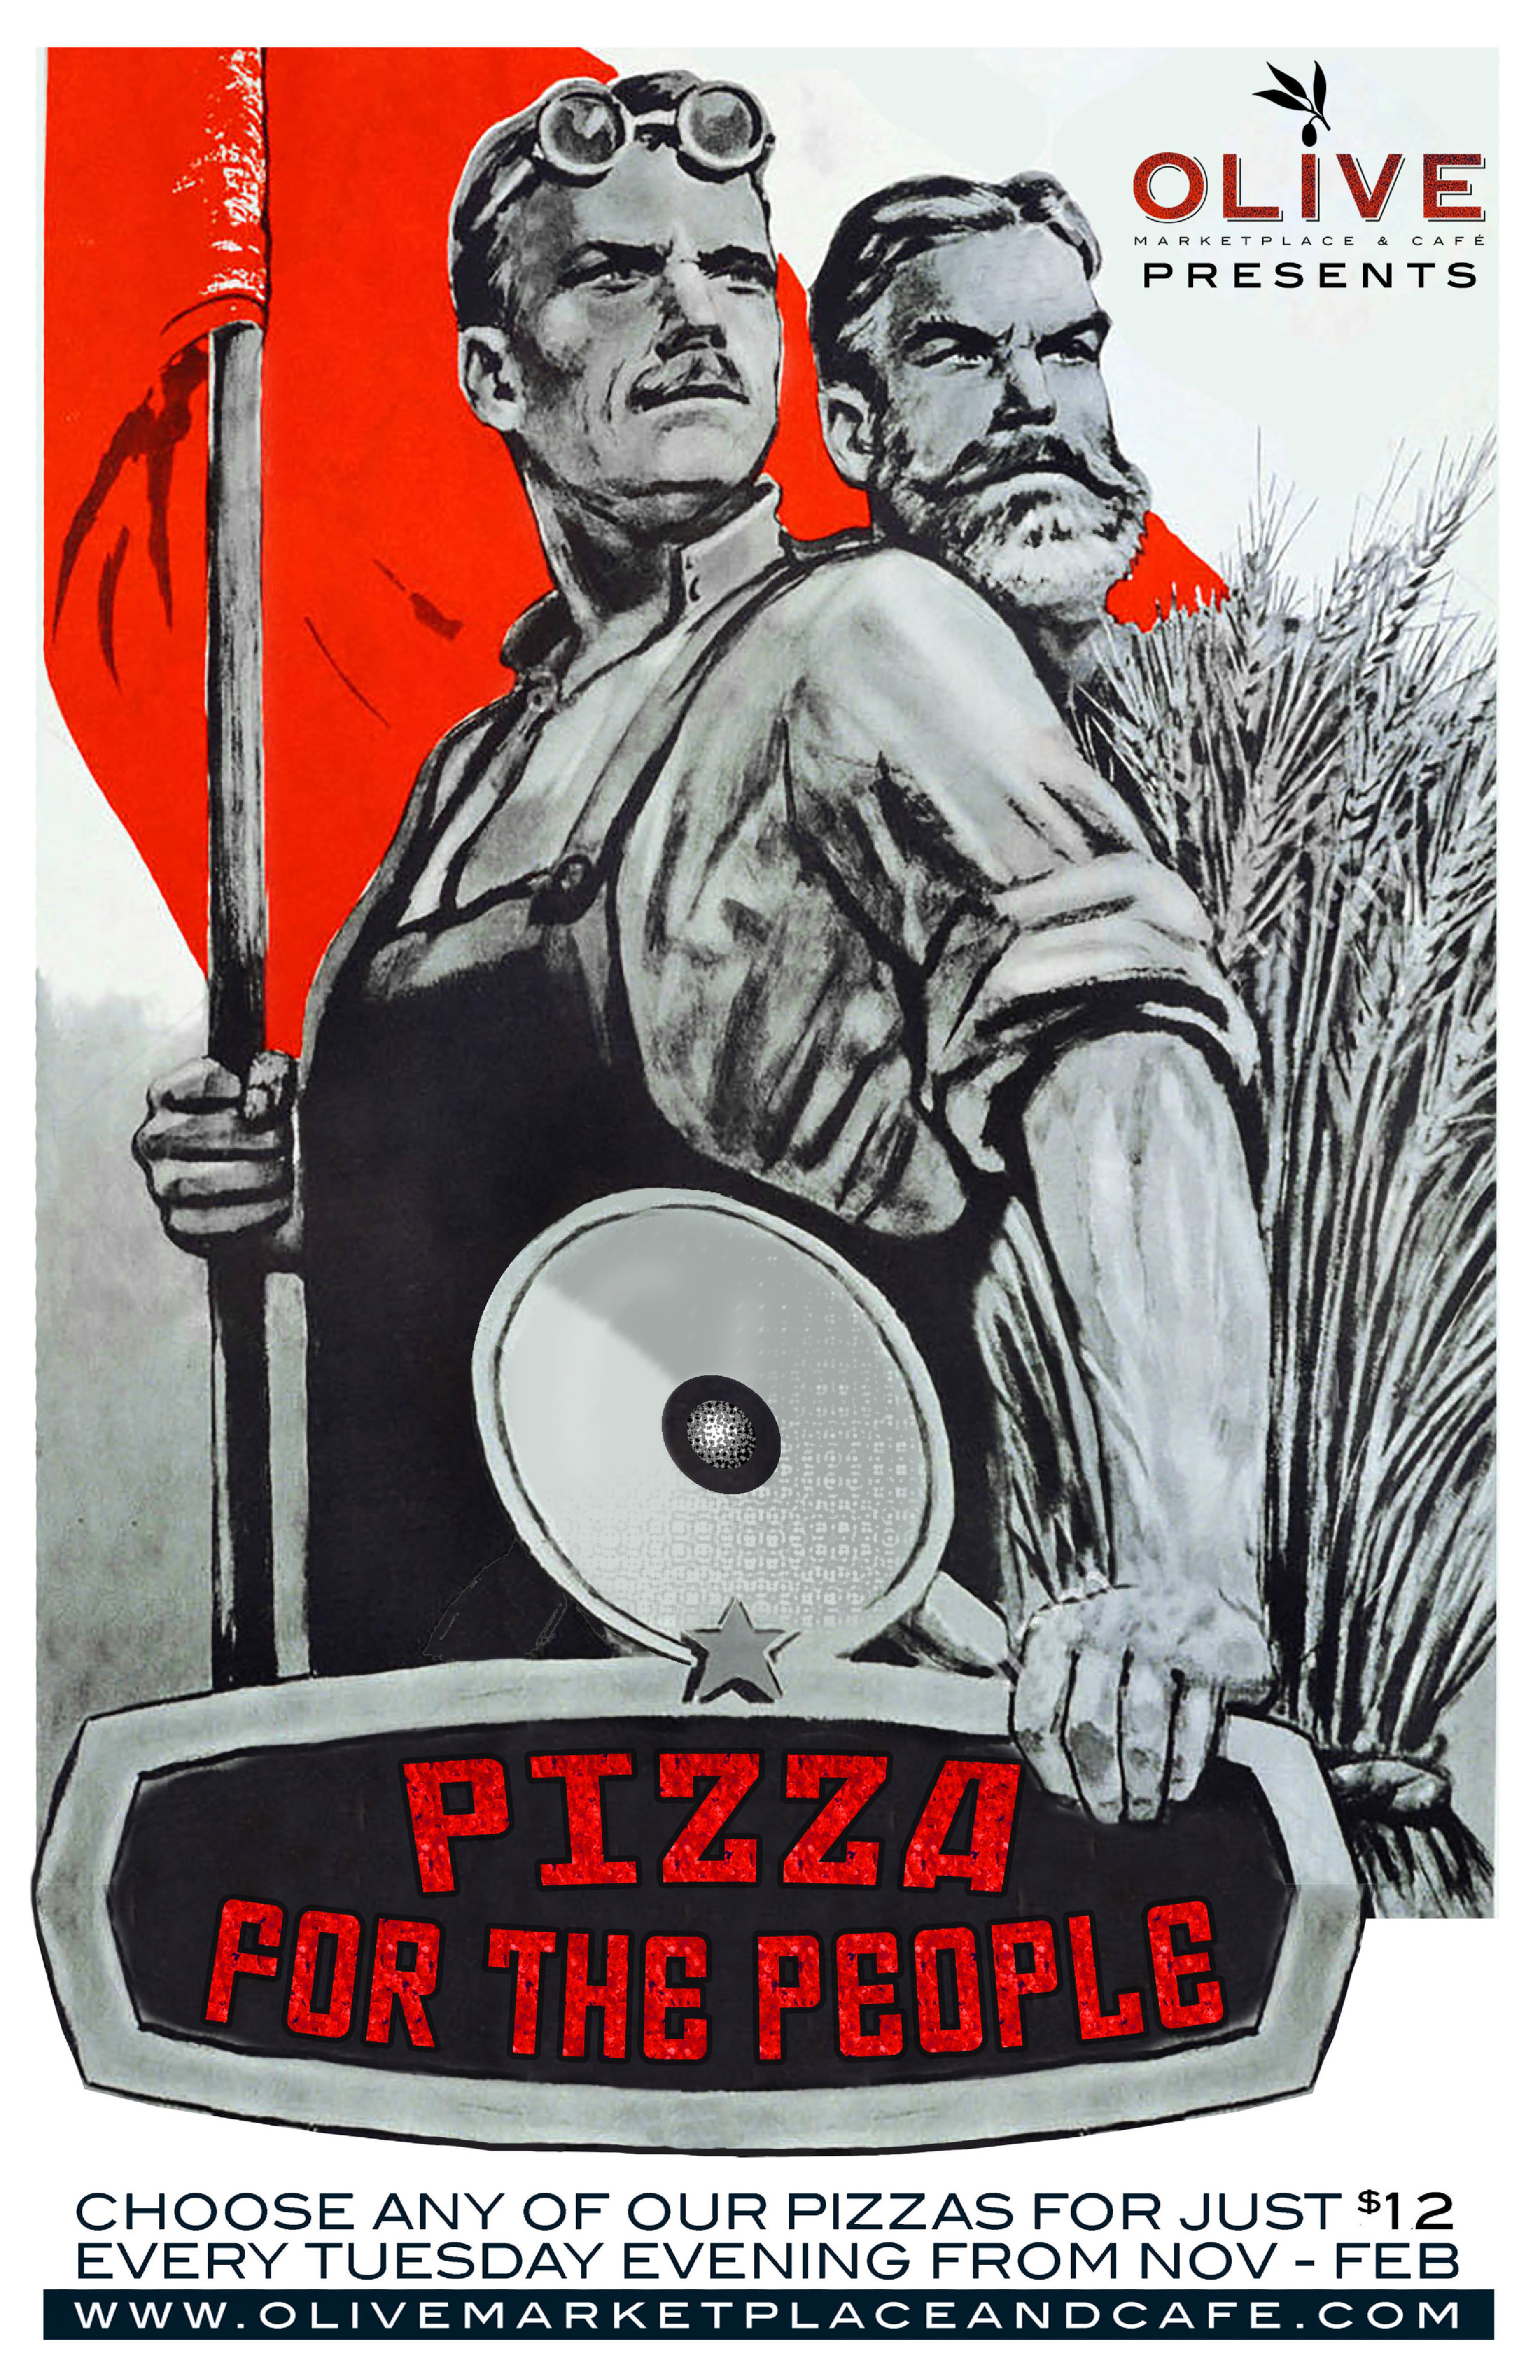 Pizza for the People - Because the people deserve pizza, every Tuesday night November through February from 4pm -close enjoy any of our pies for only $12!